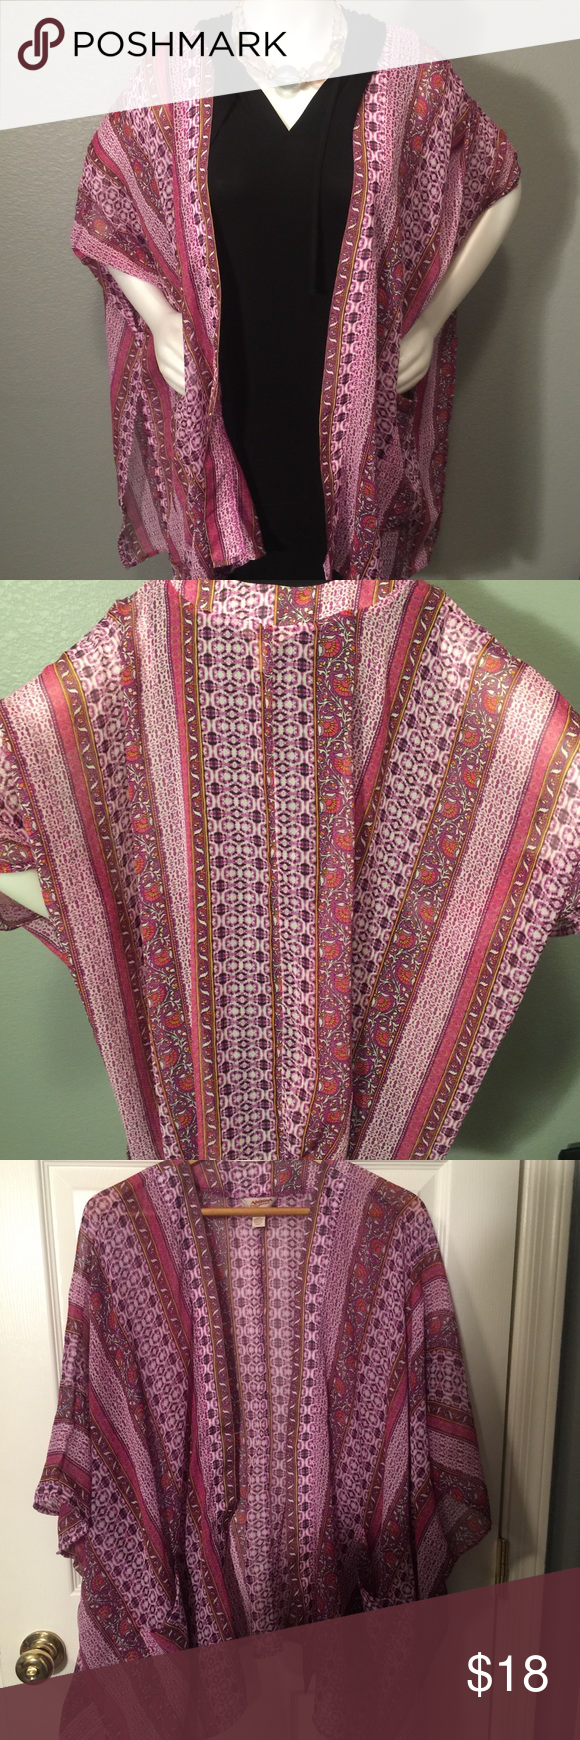 Kimono Multi Color Stripe Kimono Multi Color Stripe Pink and Magenta Color Size XLarge Fit is Oversized Flowy No Rips No Stains Super Feminine Can Be worn Over Skirts, Dresses, Slacks or Even a Swim Suit. Would look great with Jeans and Boots Side Pockets and Split on Either Side Reposh No Trades Arizona Jean Company Sweaters Shrugs & Ponchos